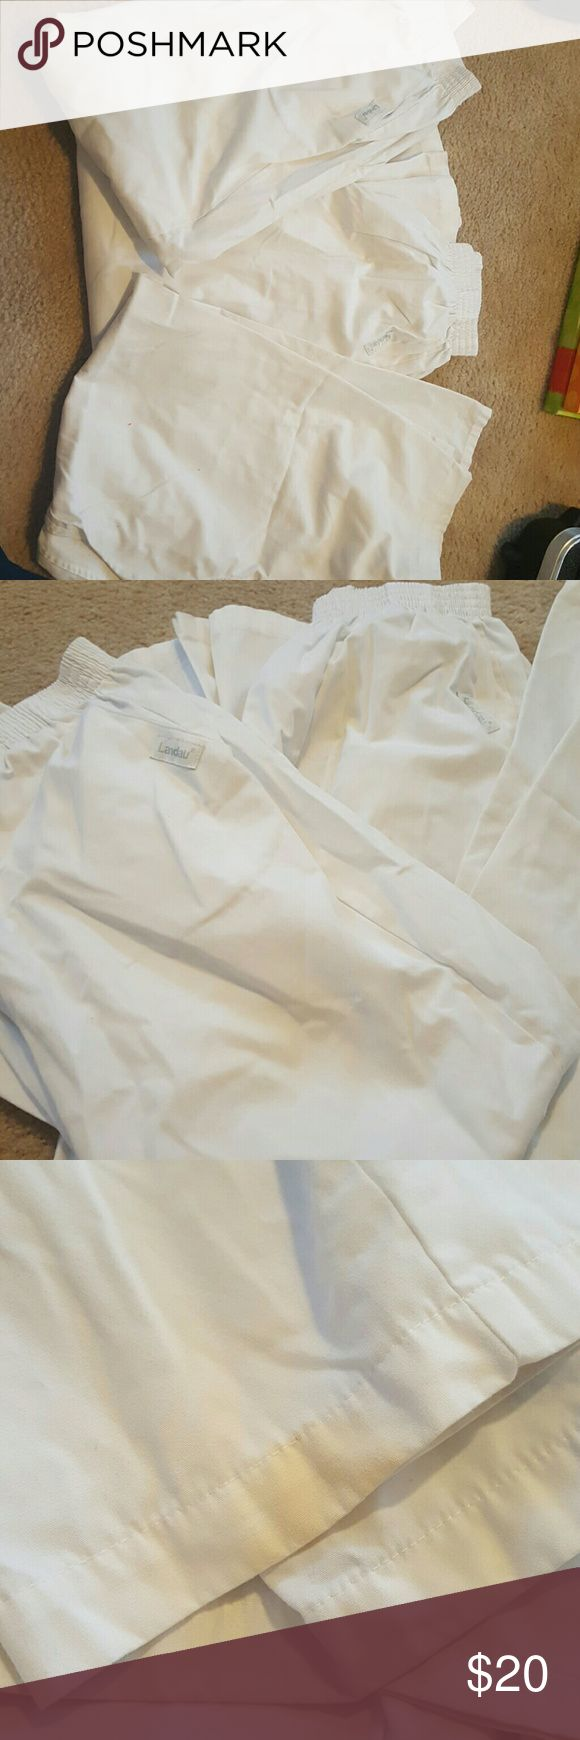 landau scrub pants has a few spots on bottom of pants but should be able to bleach out i havent tried and have no use for them anymore  2 are landau the other pair are another brand   they have been stored for a long time so needs to be bleached . Landau Other